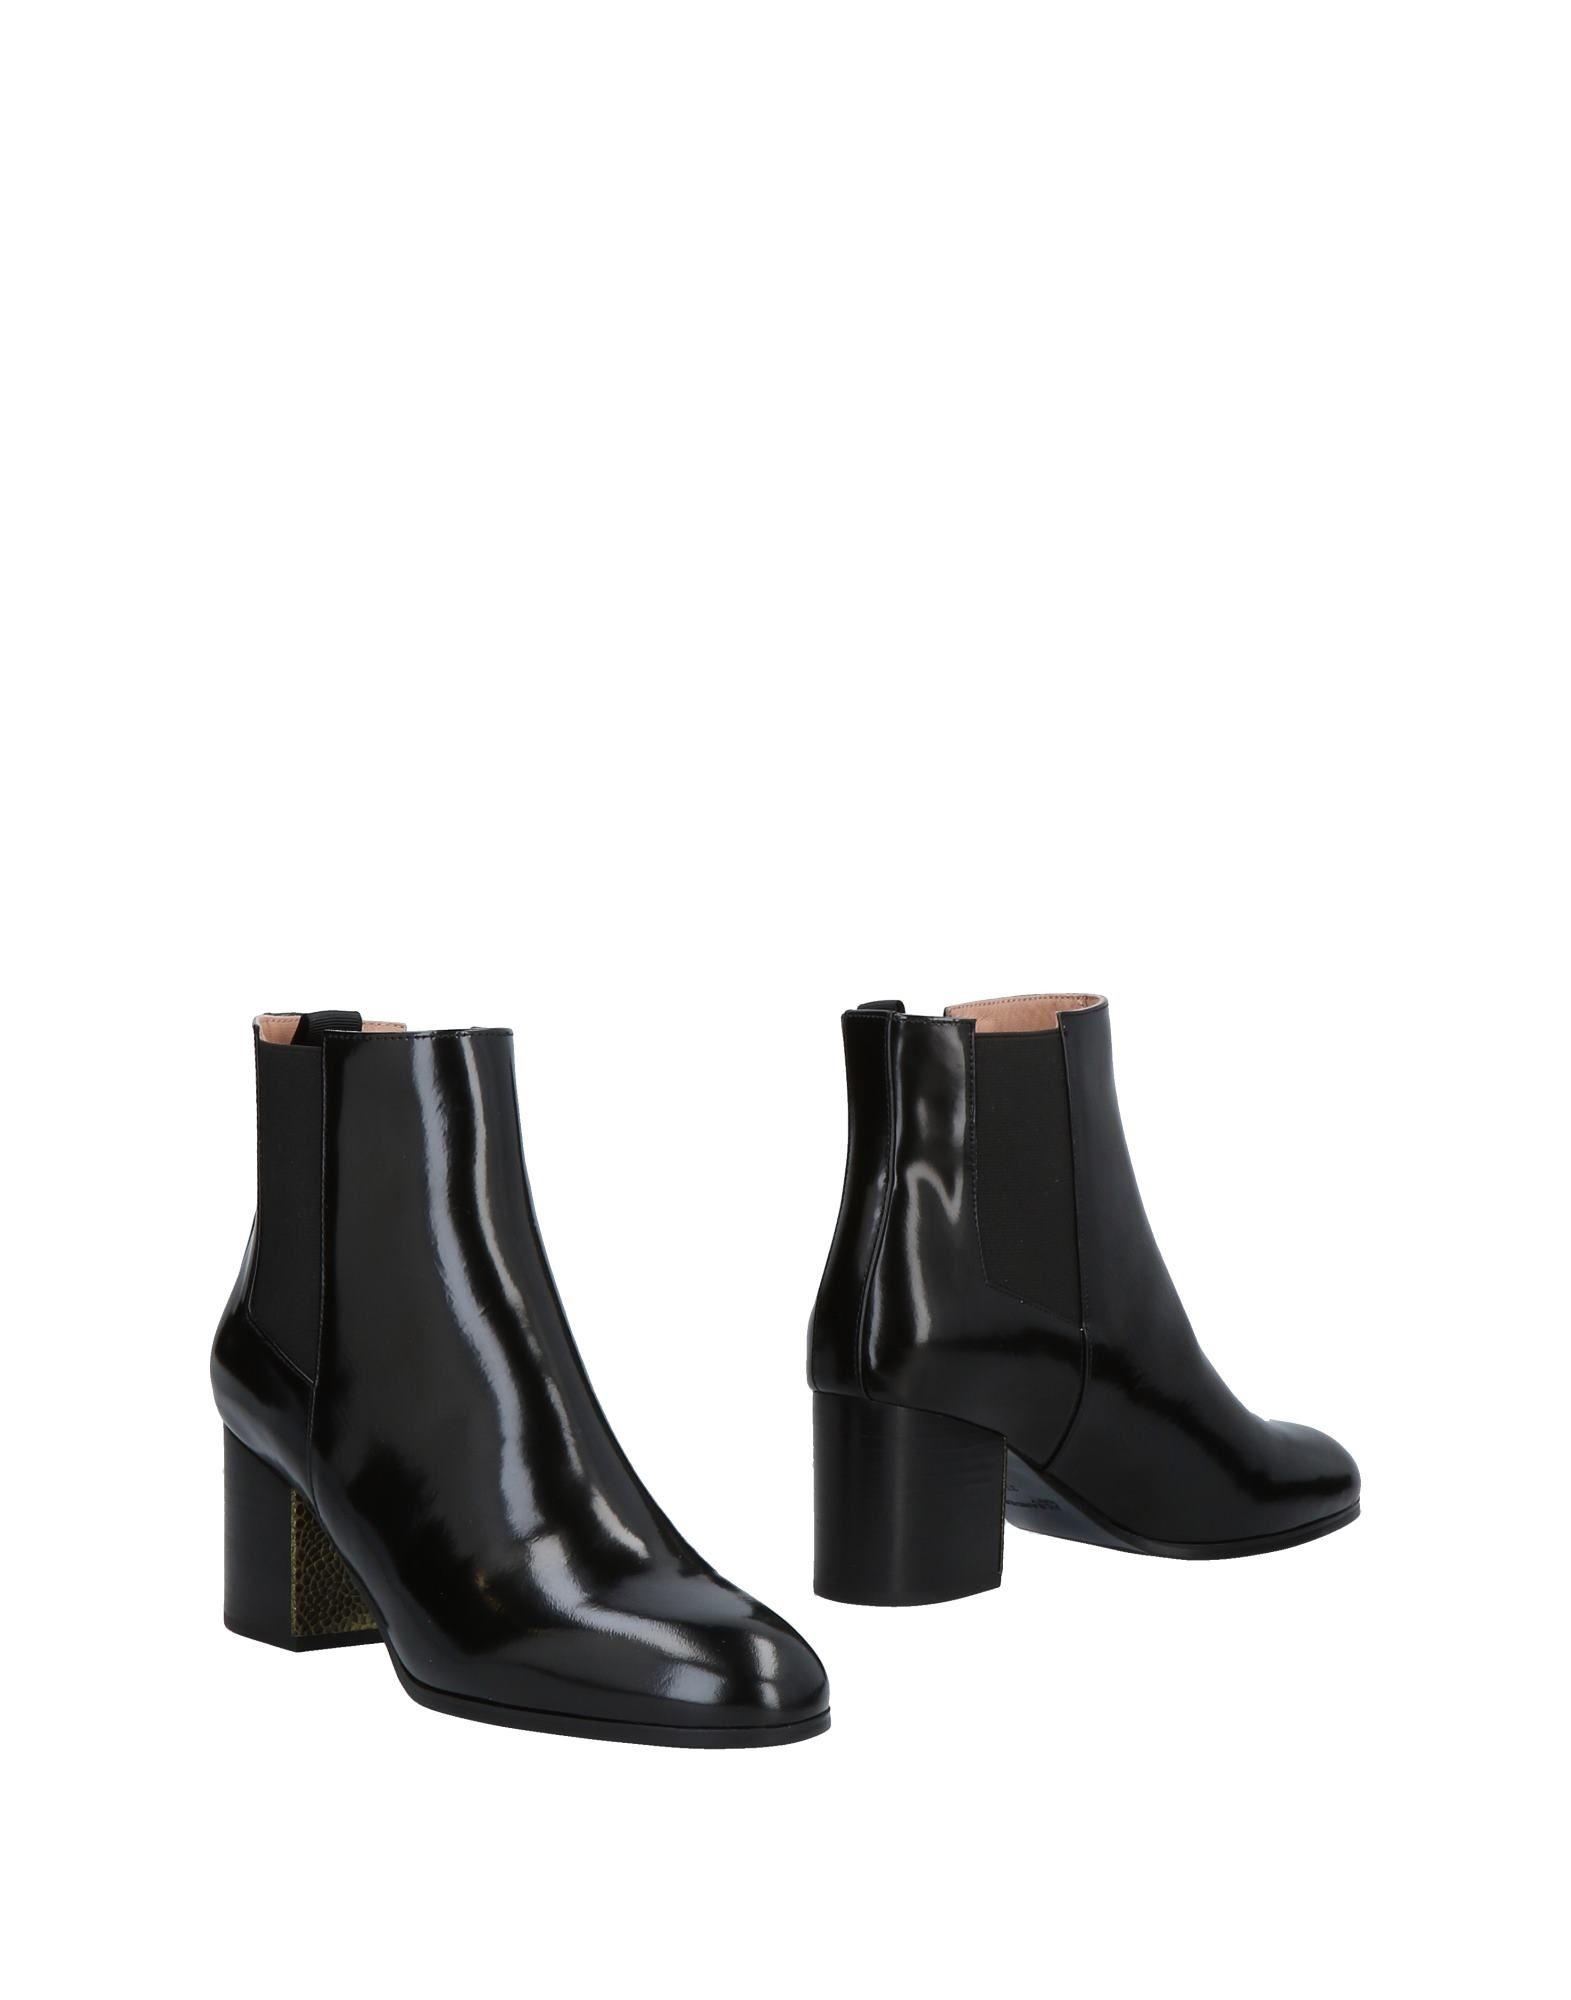 Jil Sander Navy Ankle Boot - Women Jil Sander Navy  Ankle Boots online on  Navy Canada - 11491472TJ b07d76